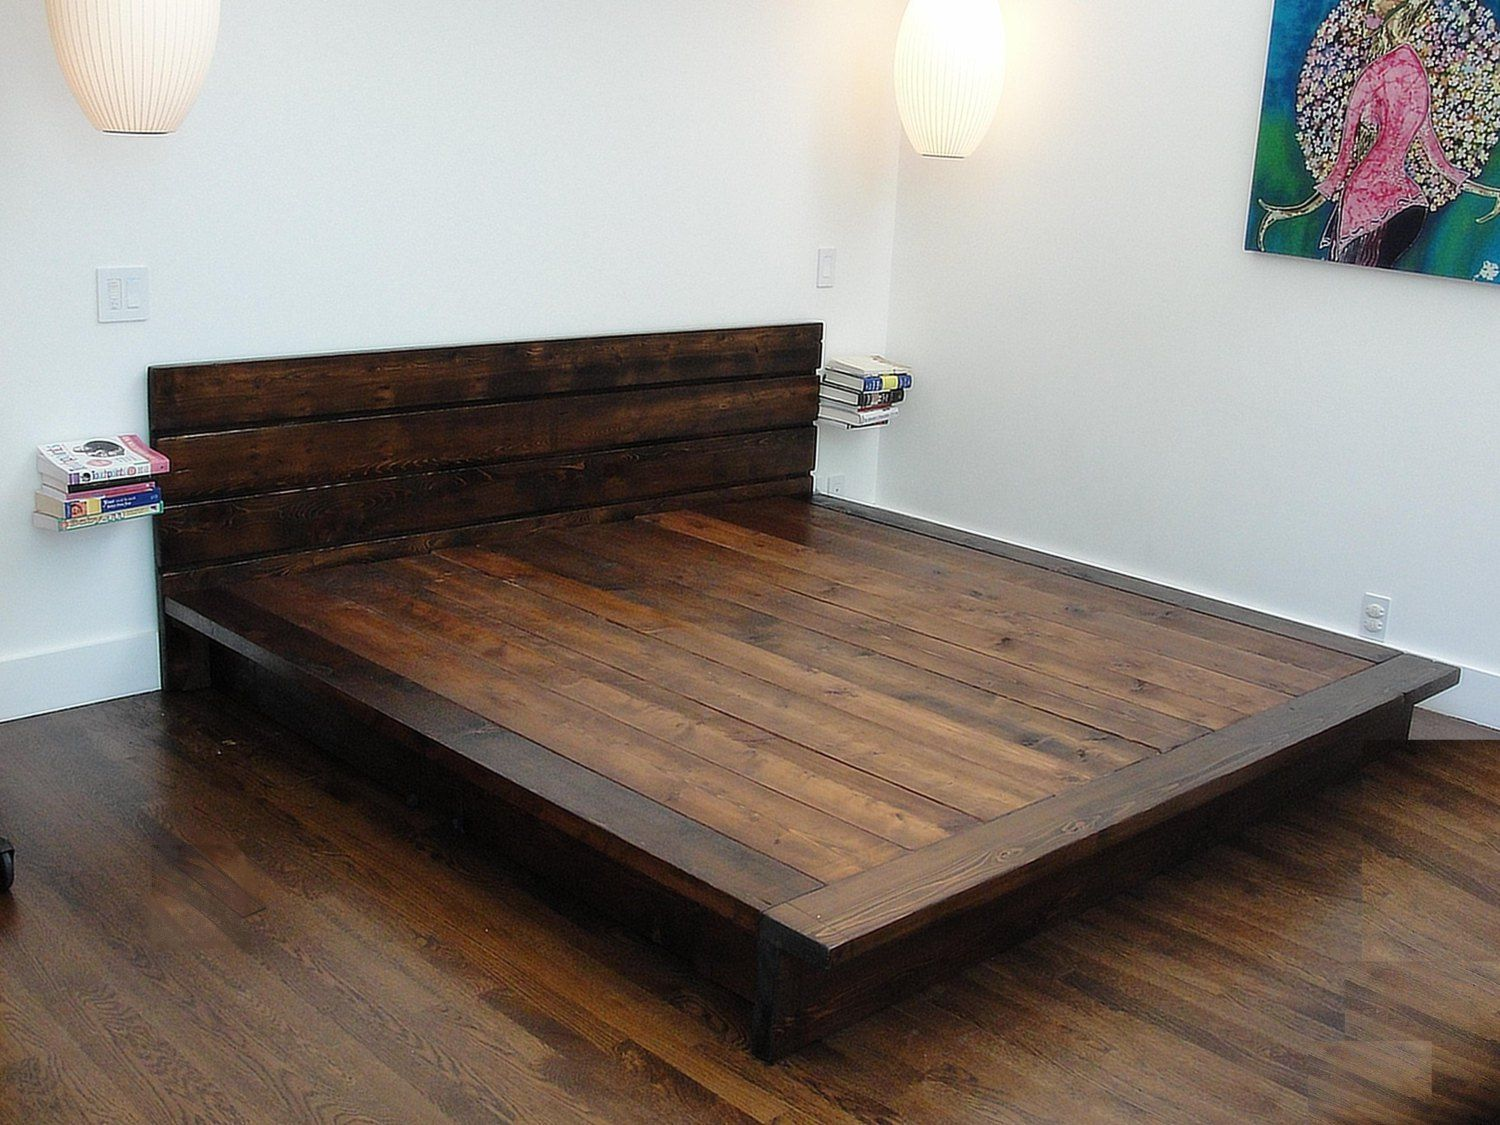 Tempting Diy Solid Wood Flat California King Platform Bed Frame Together With Headboard Andtiny Floatin Rustic Platform Bed Platform Bed Plans Diy Platform Bed